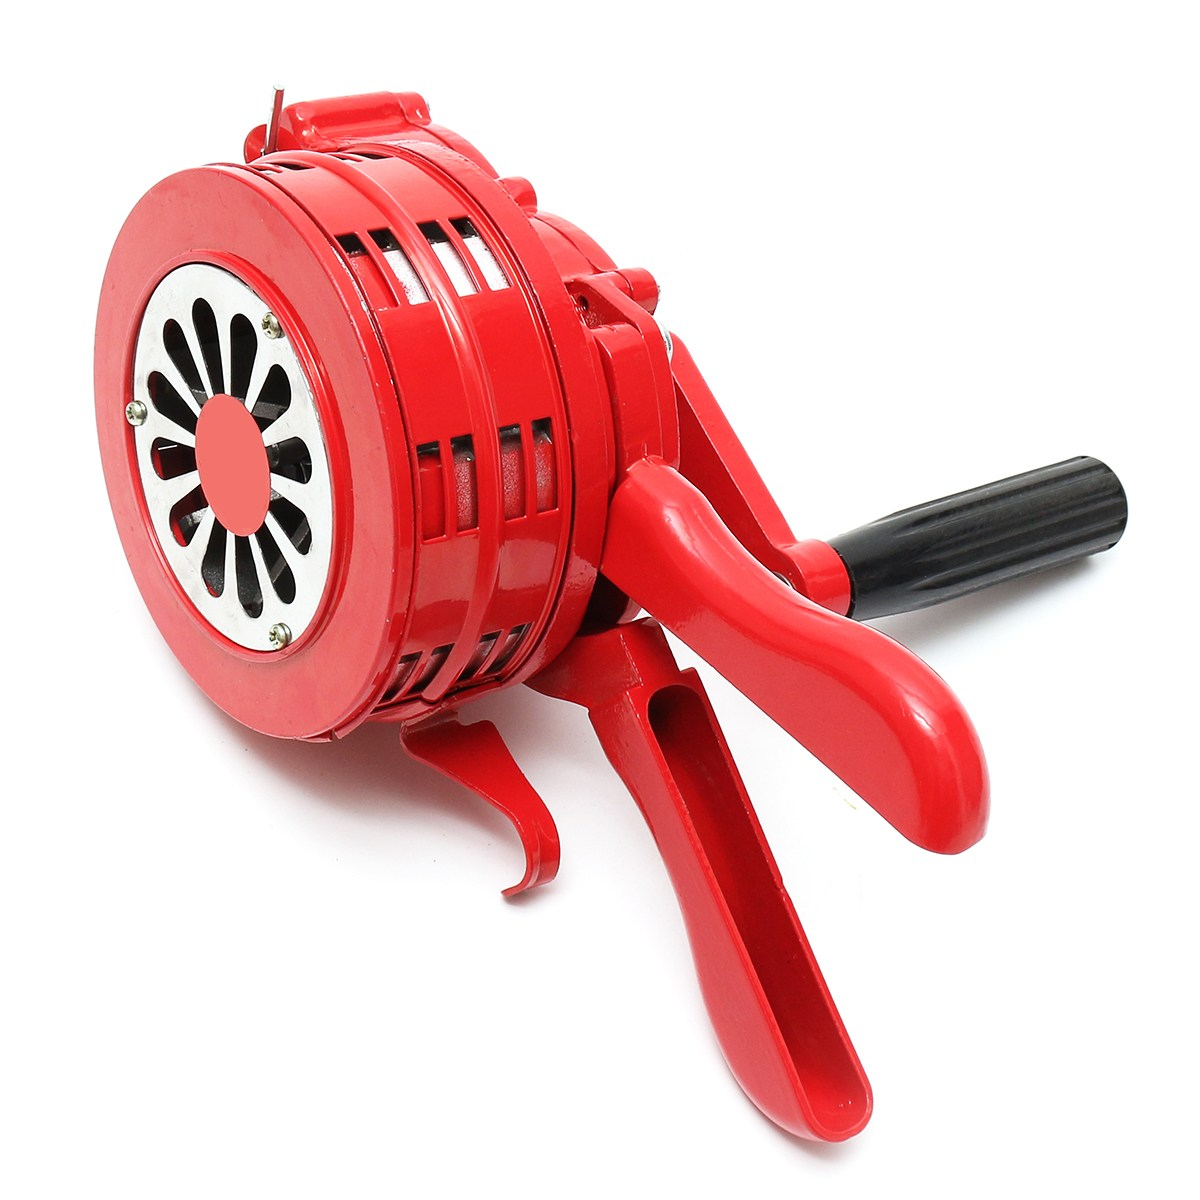 NEW 4.5 Red Aluminium Alloy Handheld Manual Operated Security Alarm Air Raid Siren Portable Safety ac110v 160db motor driven air raid siren metal horn industry boat alarm